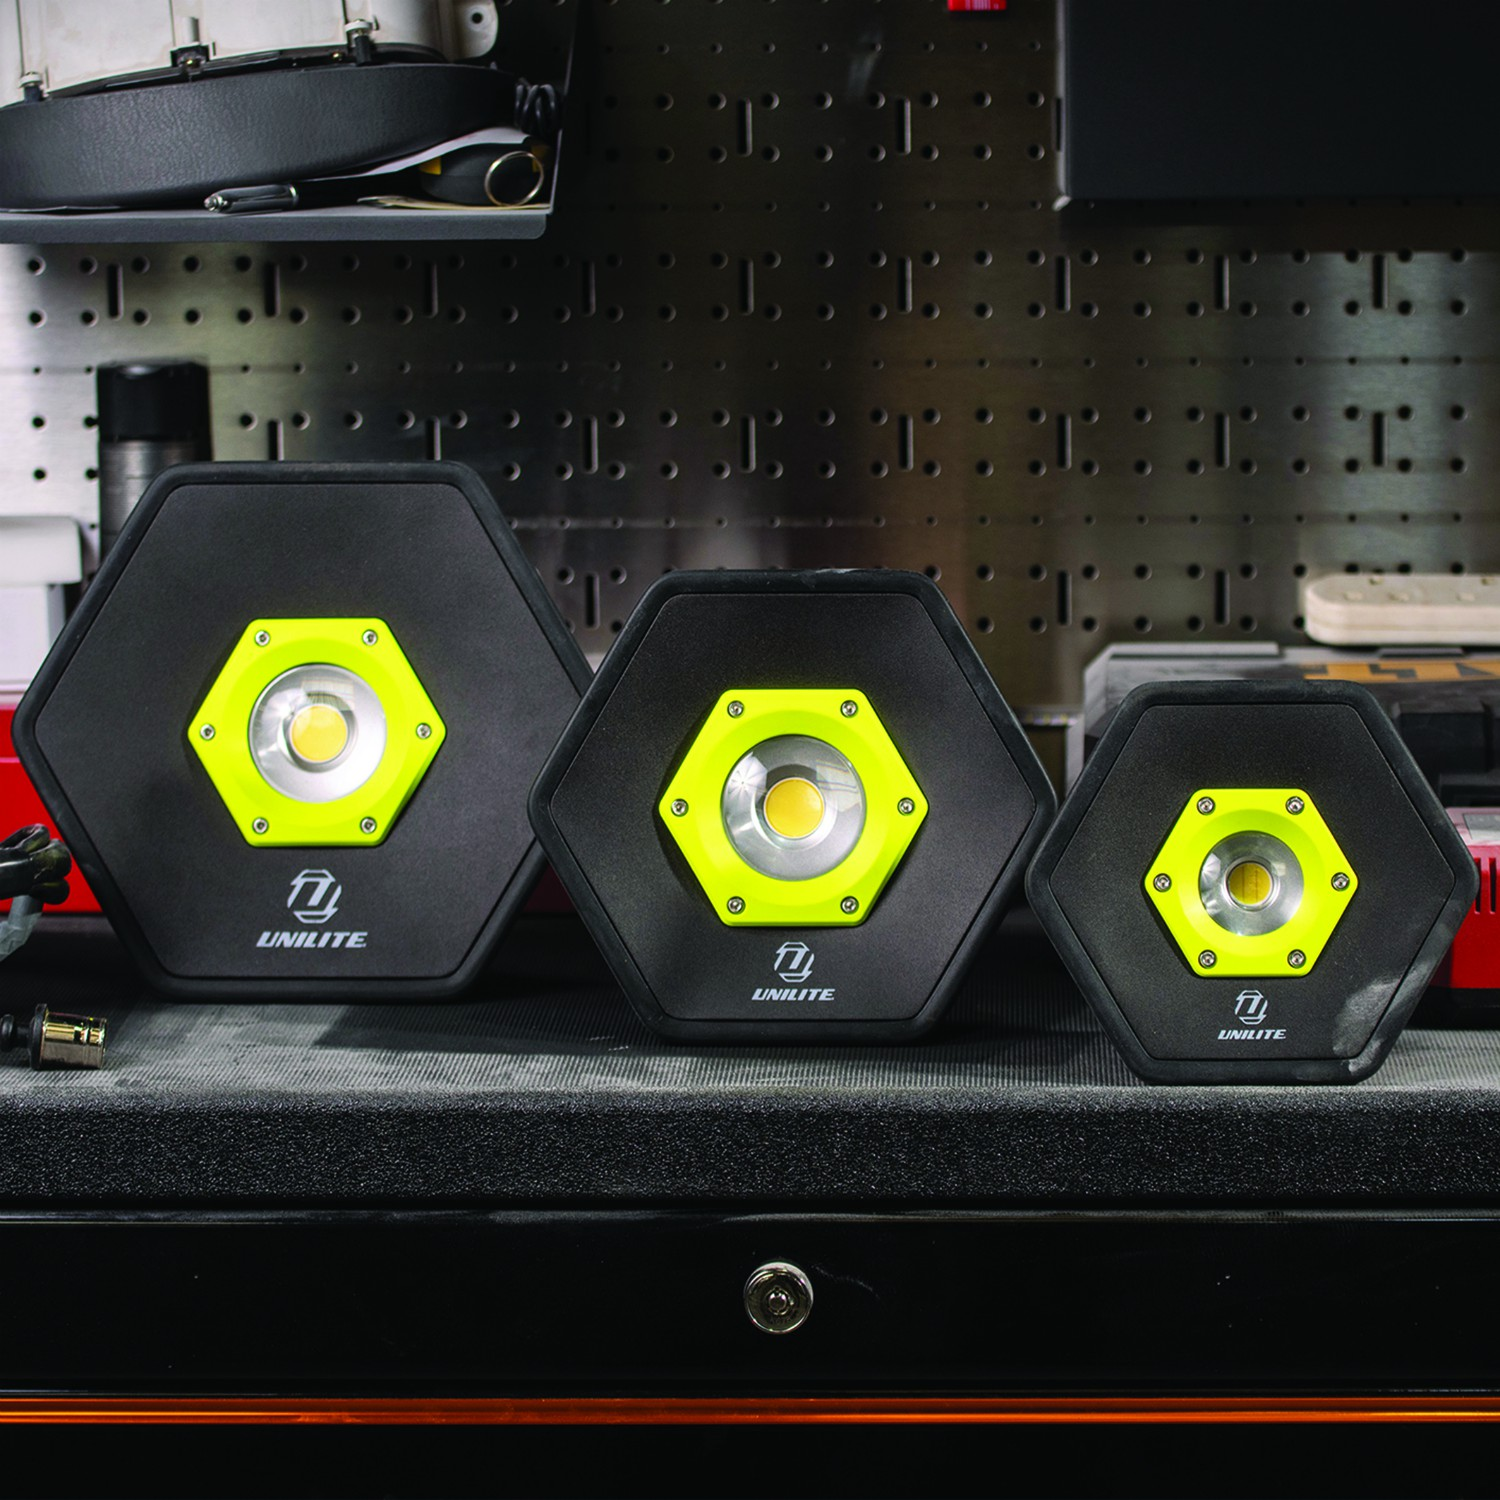 Hexatec range from Unilite